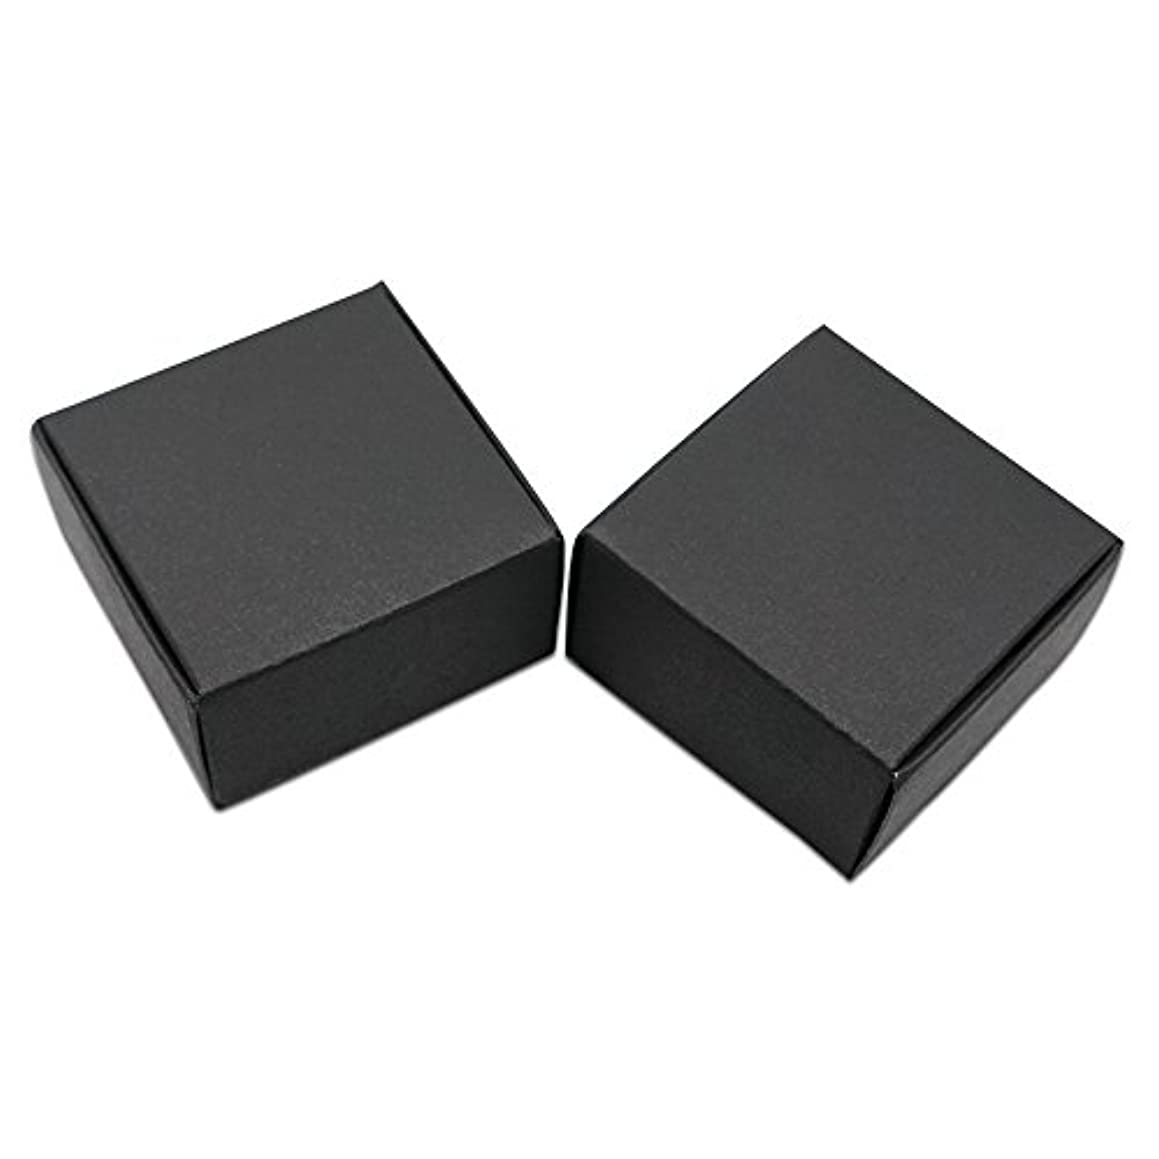 20 Pcs Small Cardboard Square/Rectangle Treat Boxes Kraft Paper Gift Favor Storage Packaging Soap Jewellery Earring Packing Paperboard Box Candy Chocolate Food Storage Pack (1.57